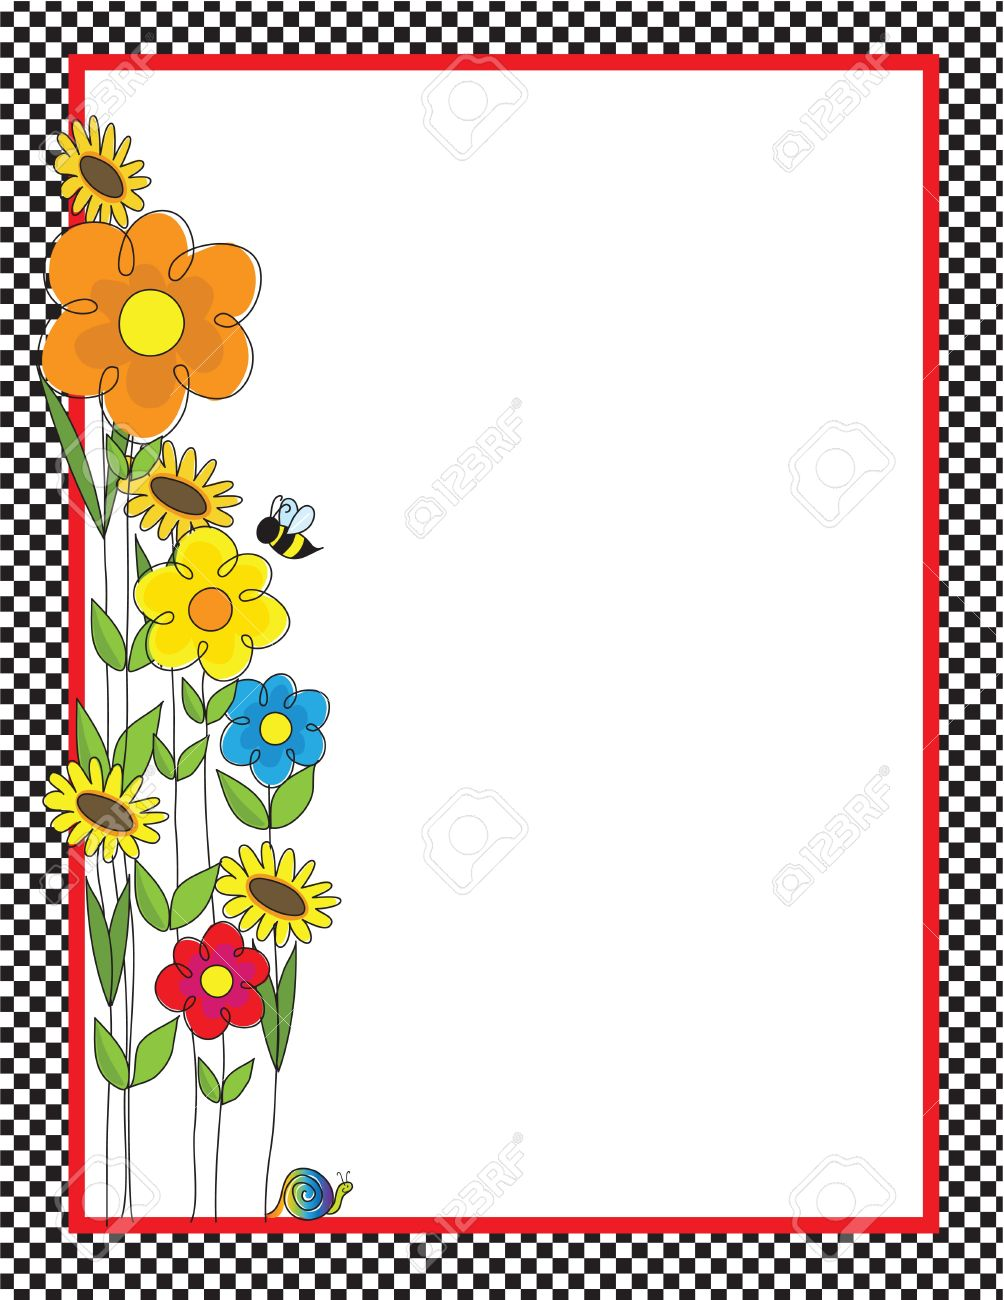 1004x1300 A Black And White Checkered Border Featuring A Spring Garden